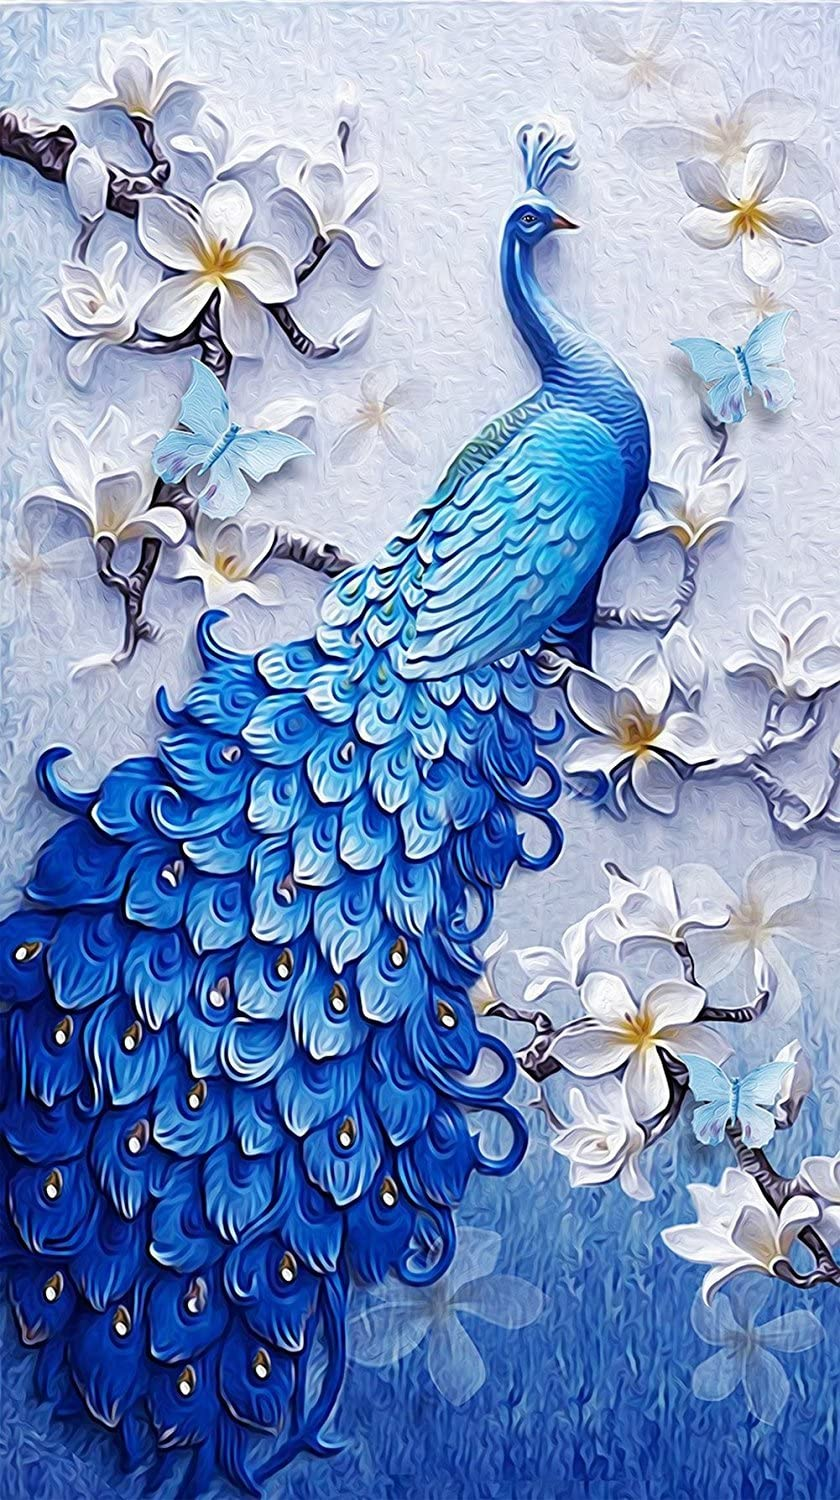 Crystal Rhinestone Diamond Embroidery Paintings Home Interior Decoration Crafts Pictures 2 DIY 5D Diamond Paintings